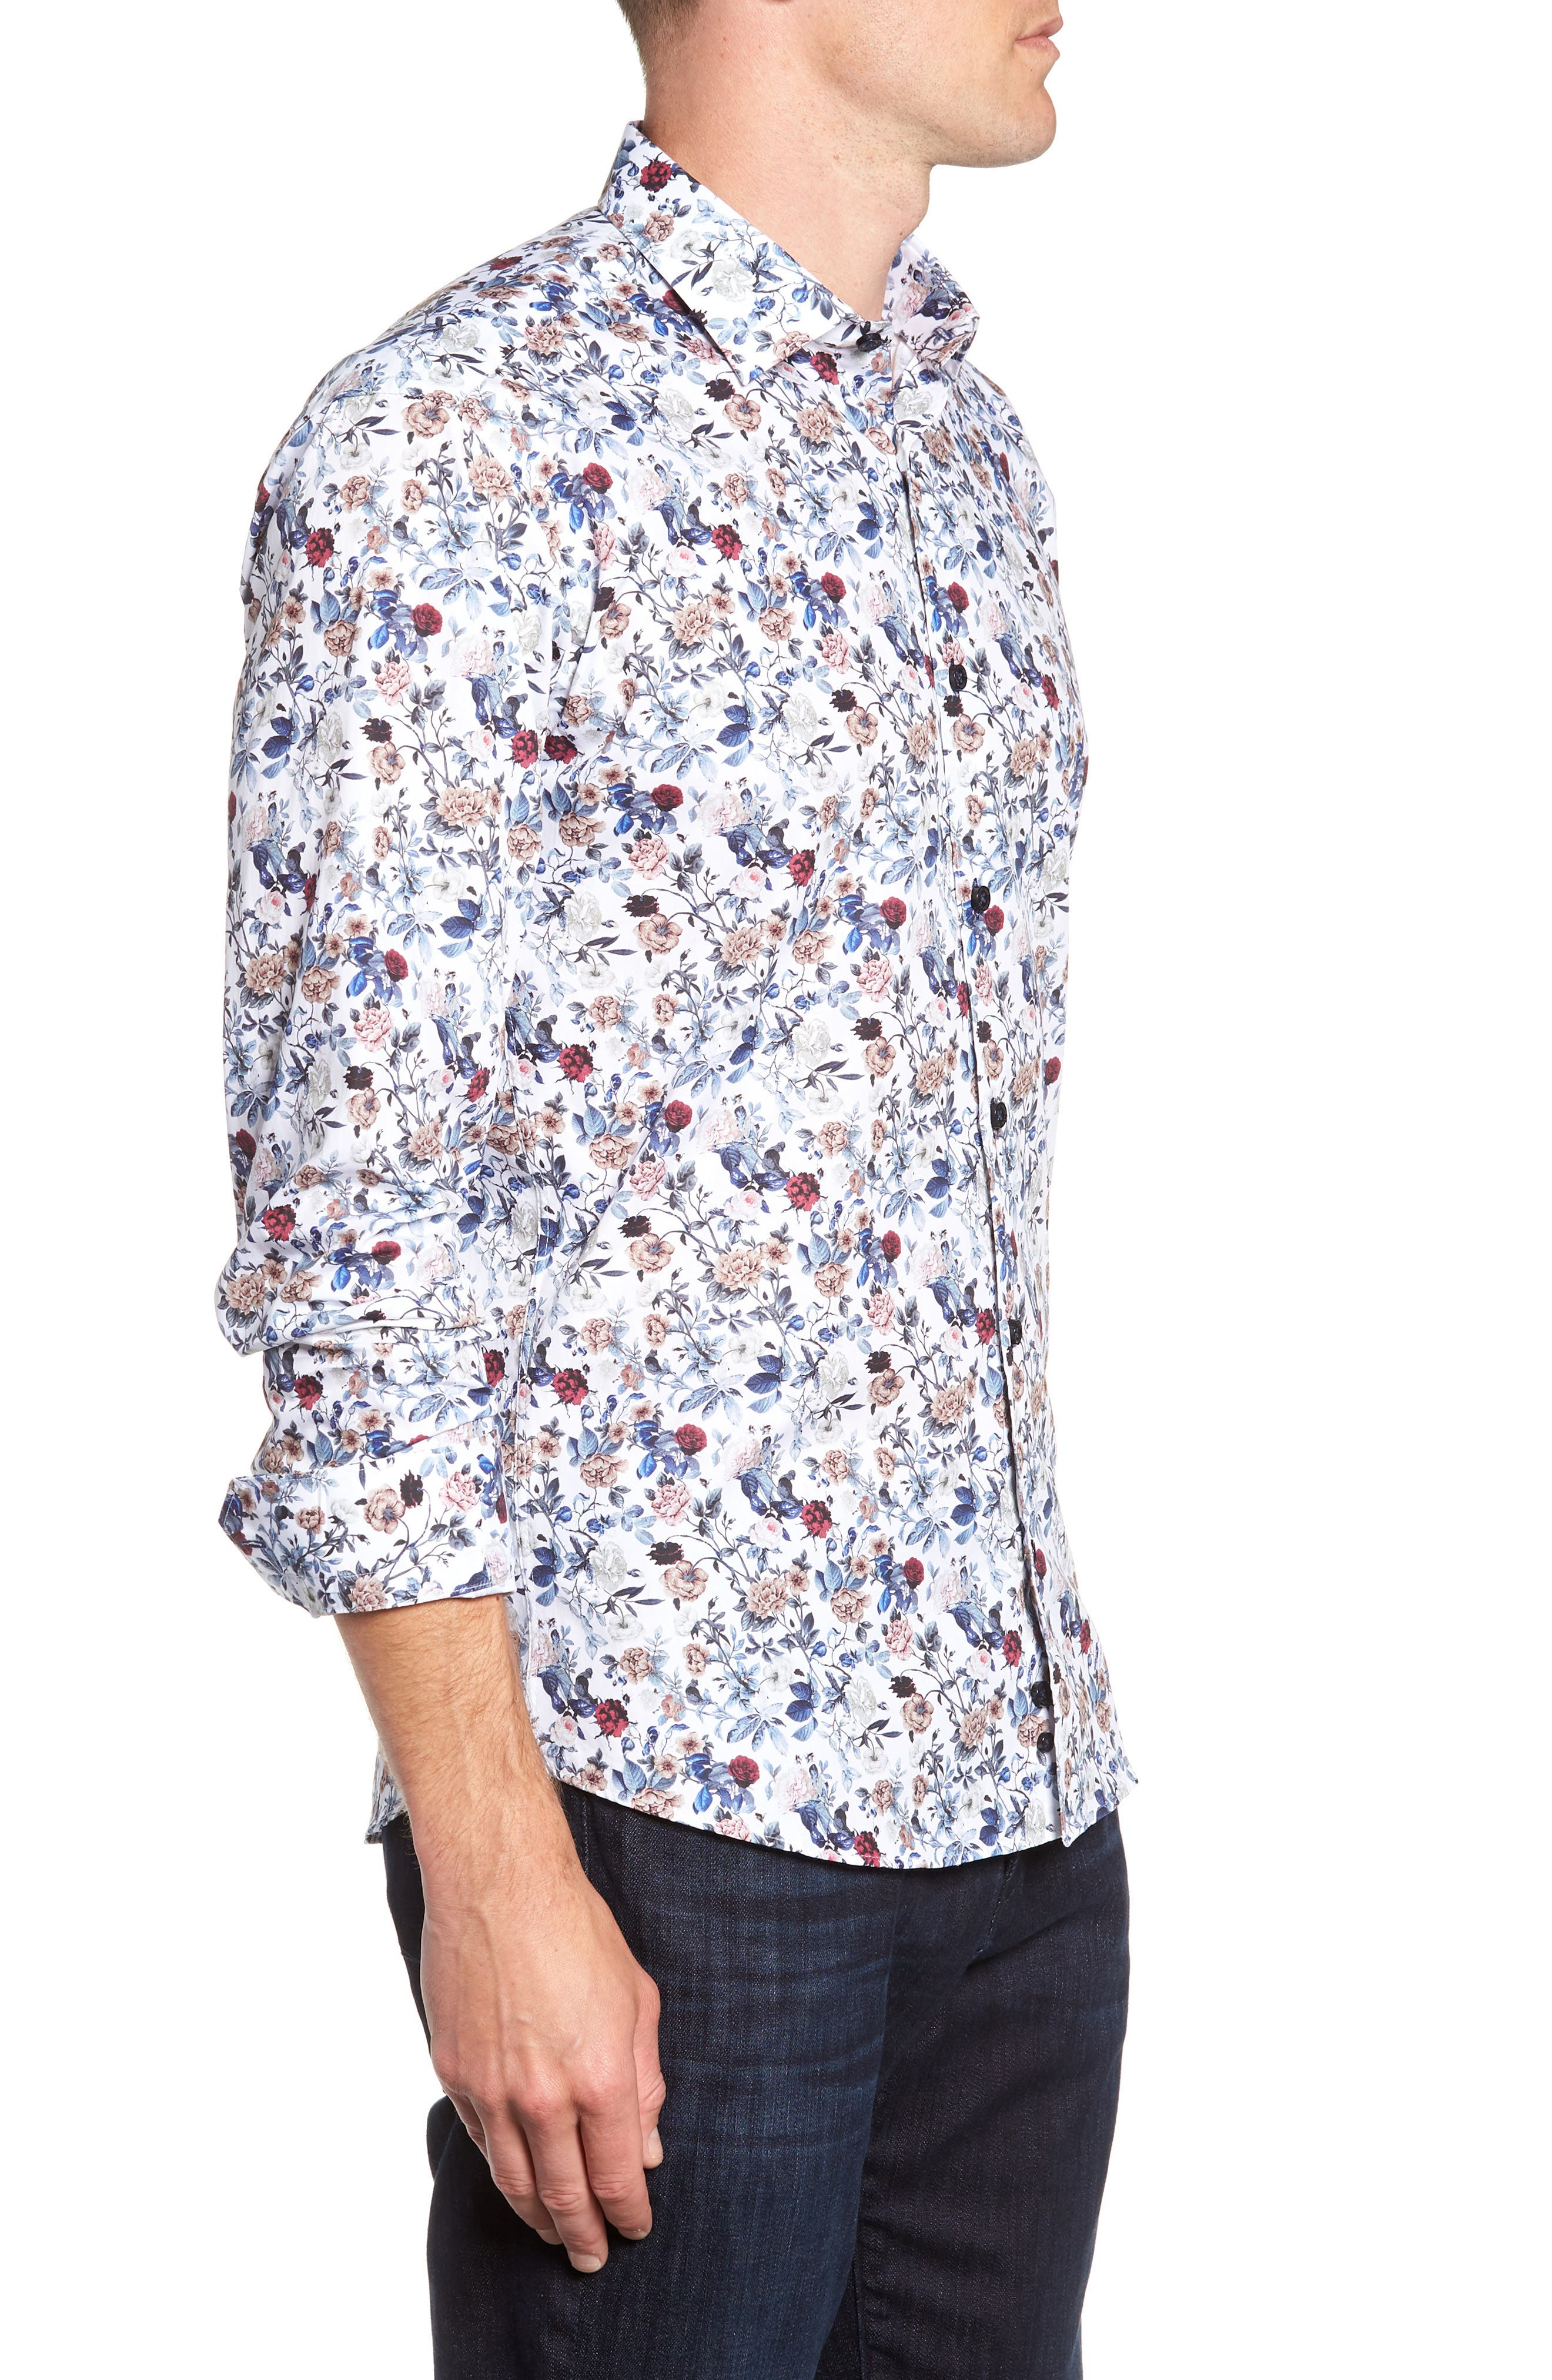 Floral Sport Shirt,                             Alternate thumbnail 4, color,                             White Navy Print